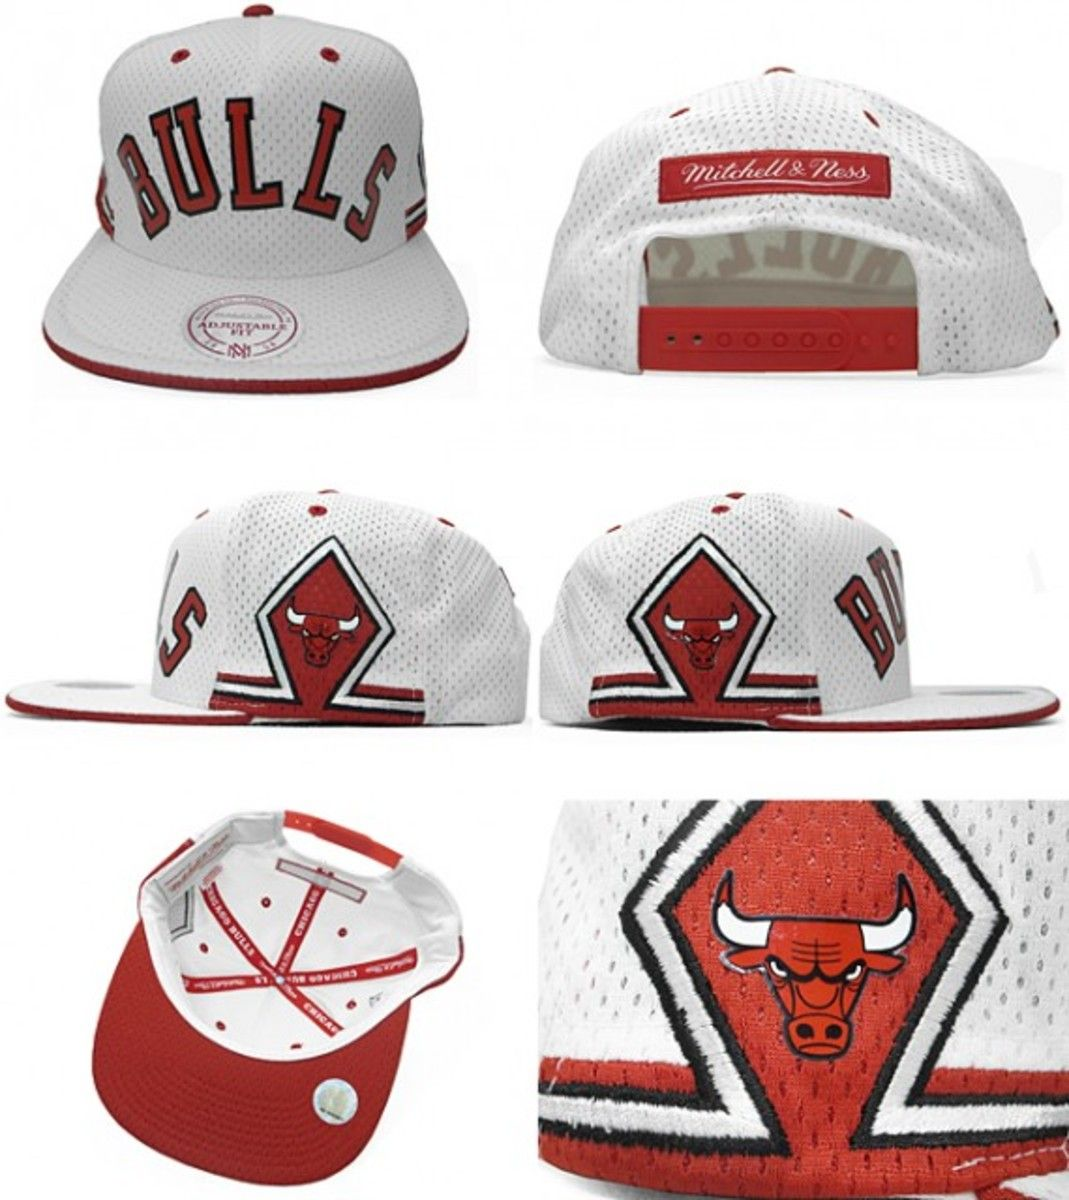 6a0a2641440 mitchell-and-ness-chicago-bulls-retro-jersey-snapback-cap-02